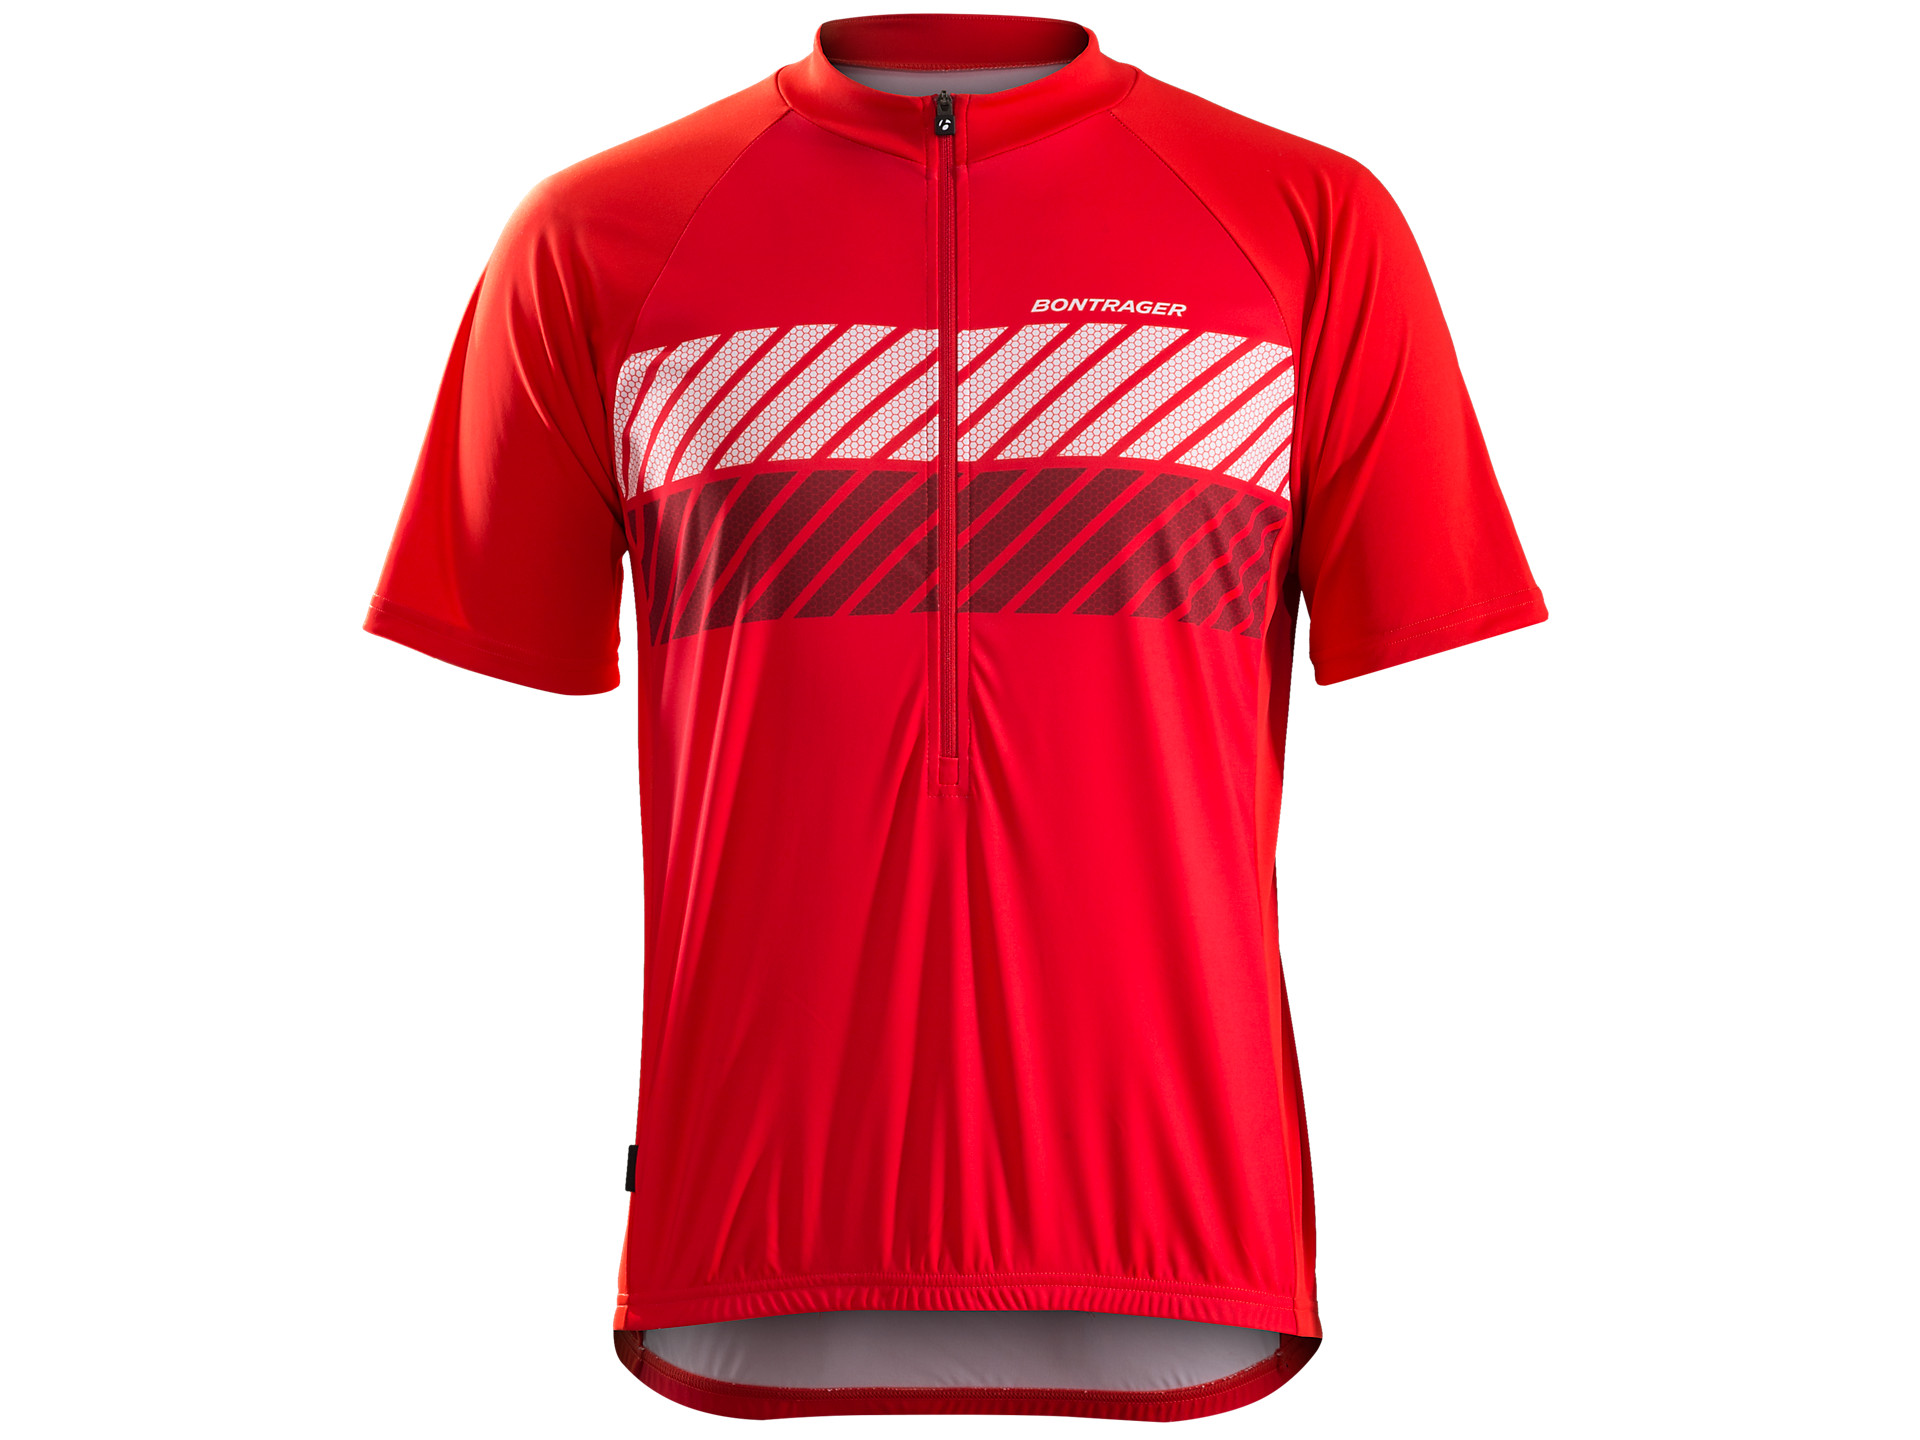 42bdfc326 Bontrager Solstice Cycling Jersey